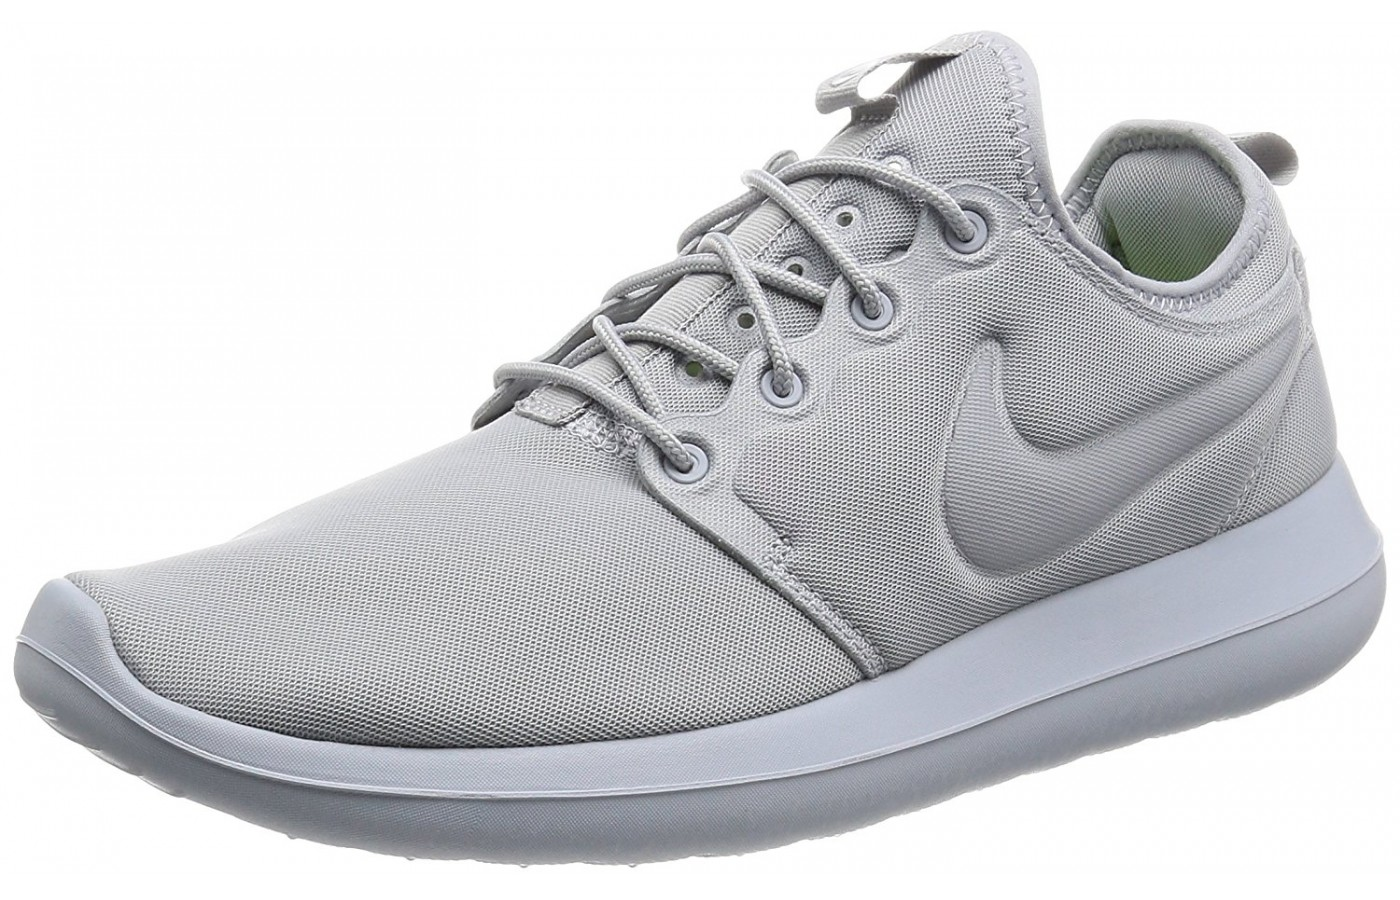 A three quarter view of the Nike Roshe 2 running shoe